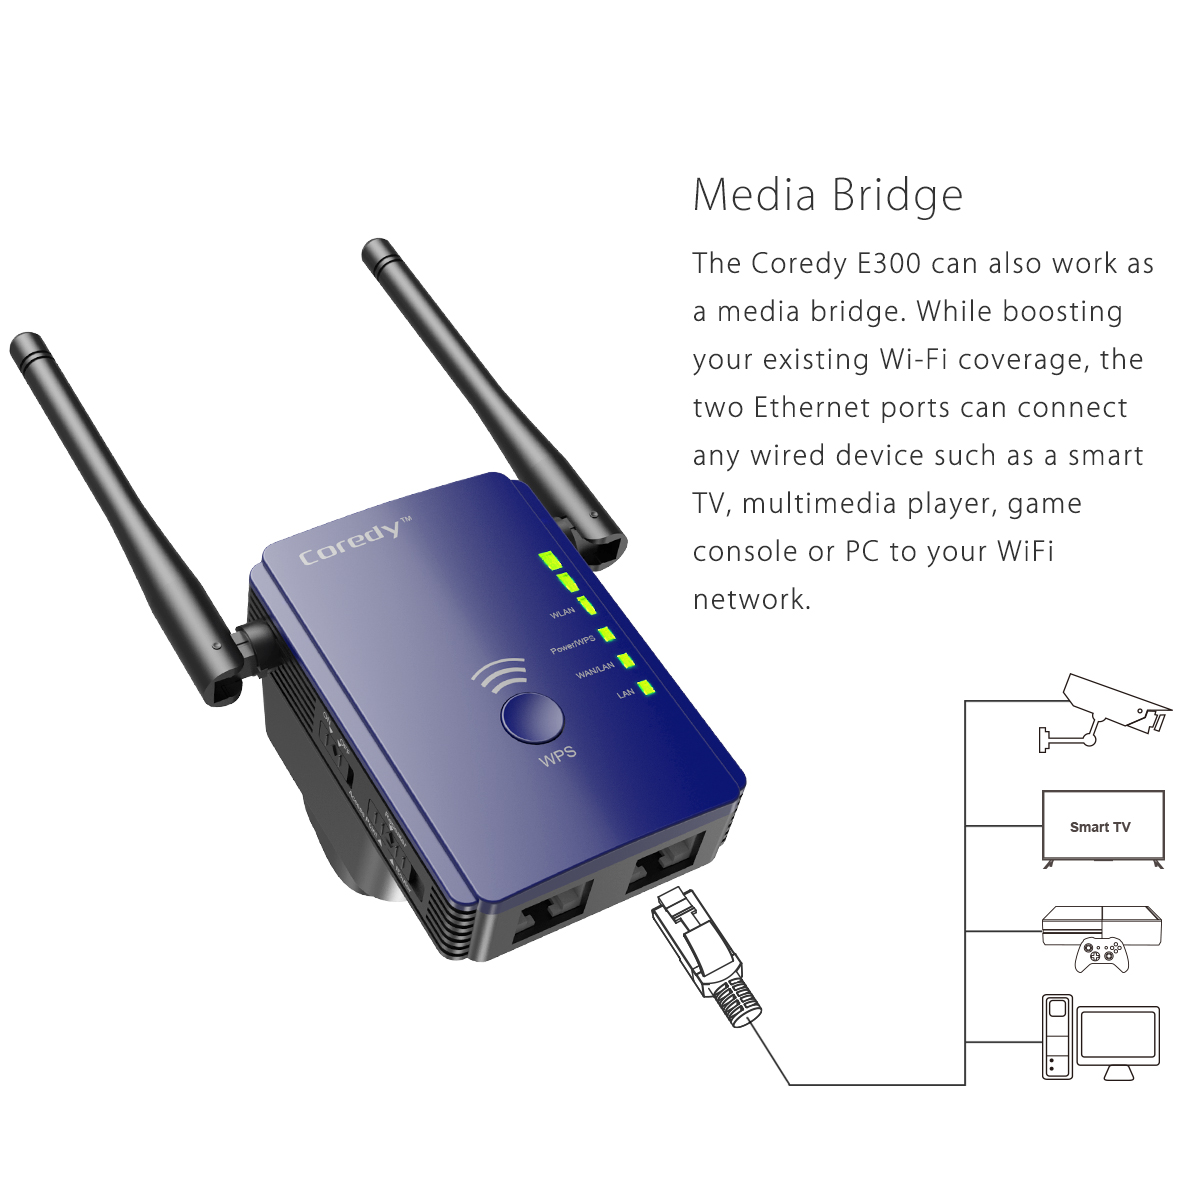 E300 Wifi Extender Products Coredy Connect Your Smart Life Usb Cable With Repeater Schematic 300mbps Mini Wi Fi Range Wireless Internet Signal Booster External Antennas Compatible Alexa Extends